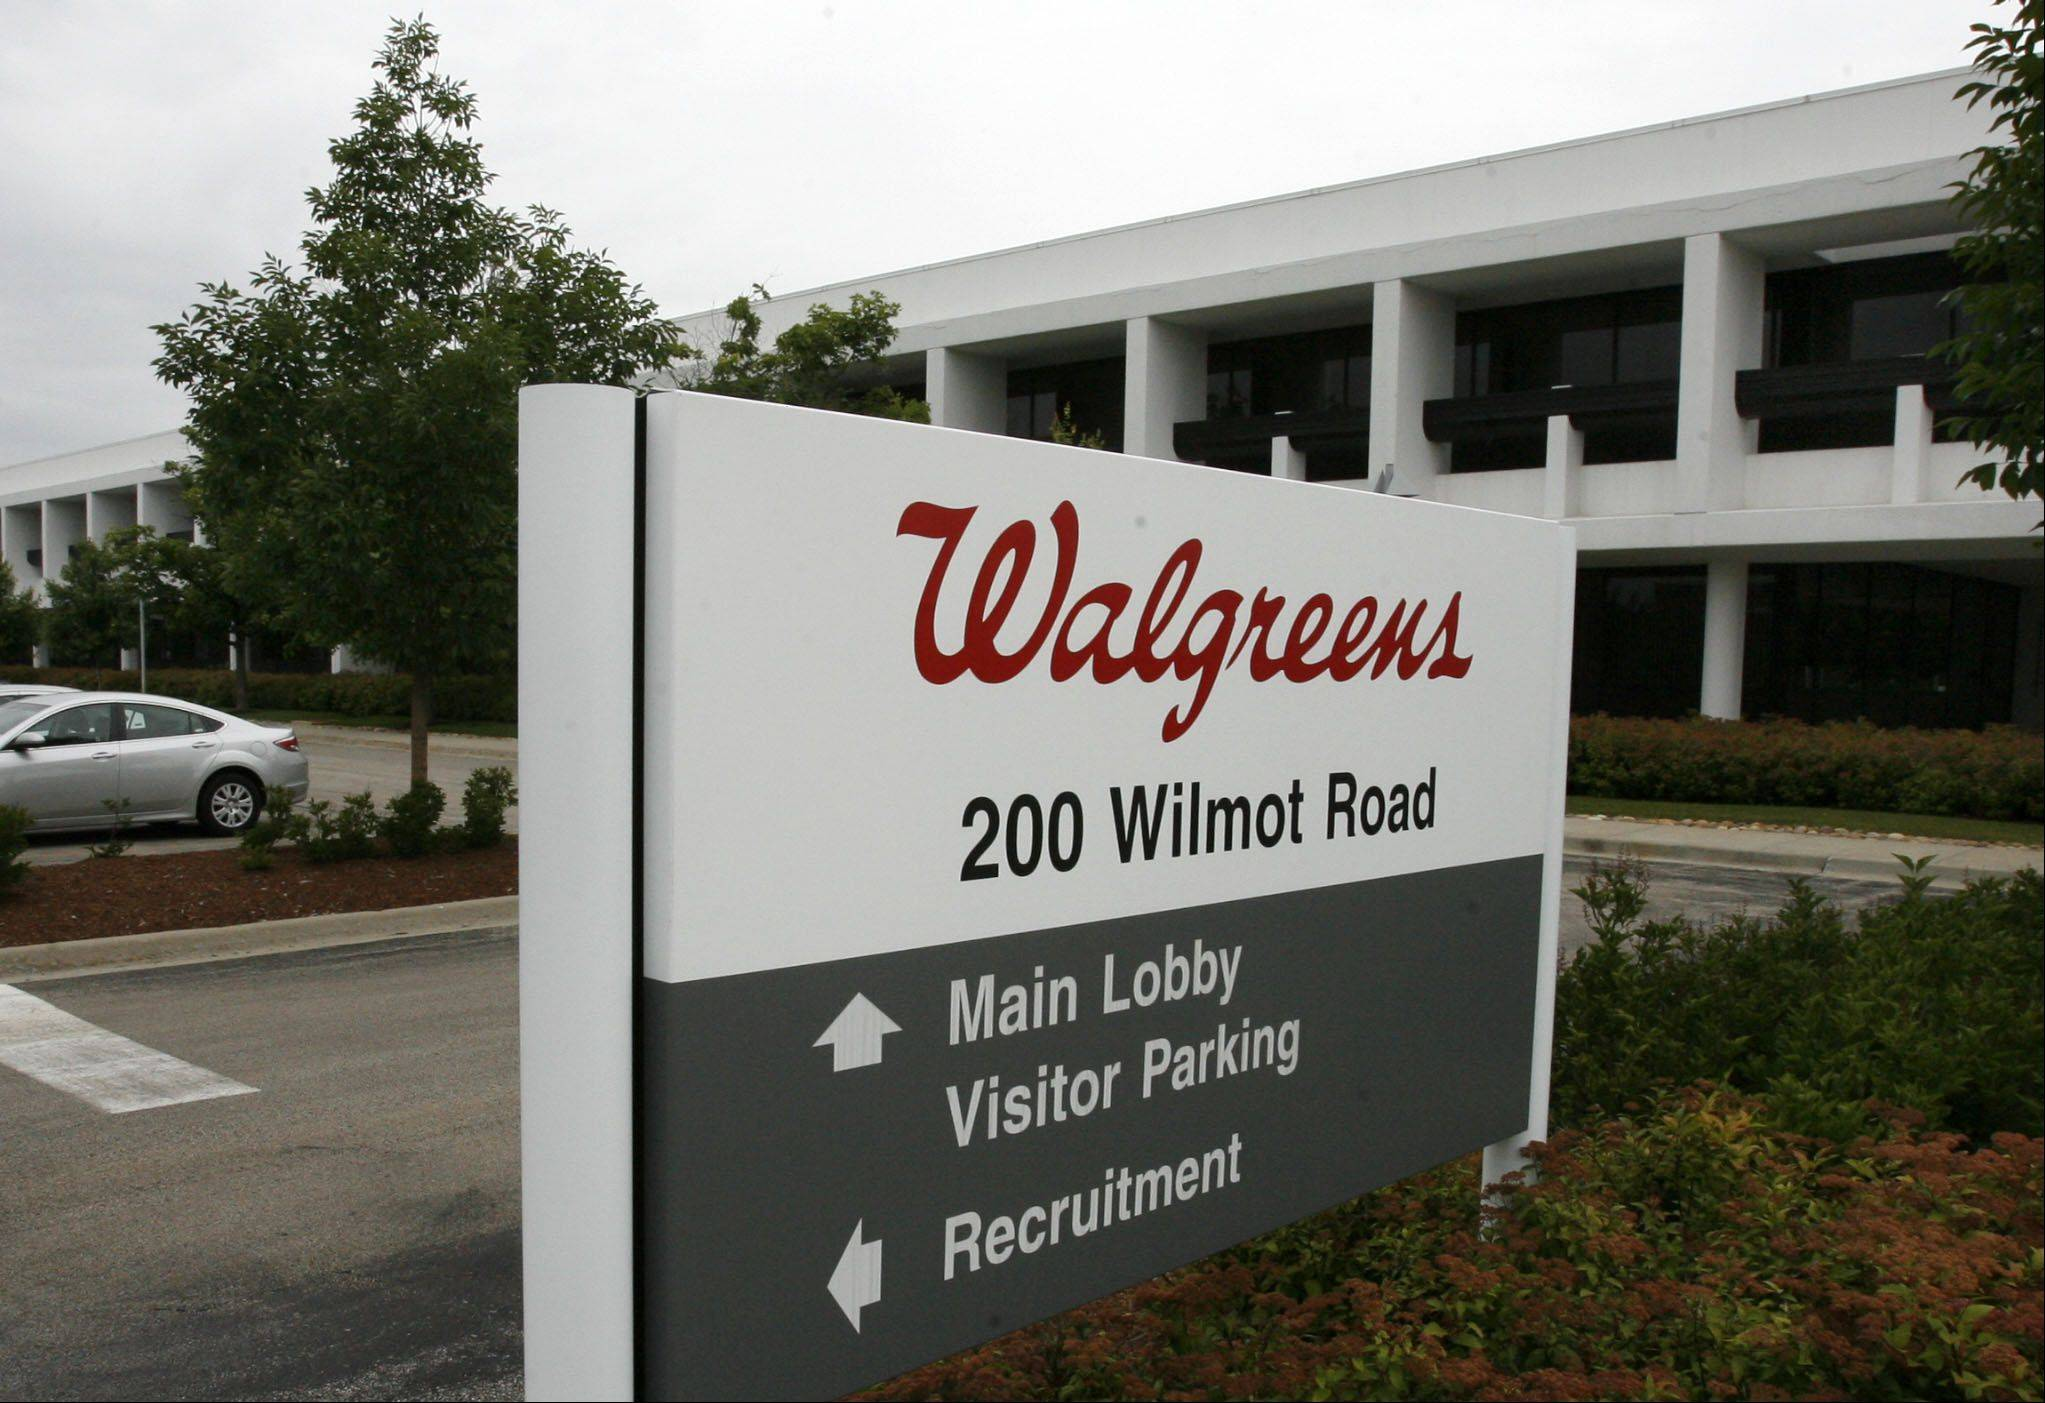 Walgreen Co.'s fiscal fourth-quarter earnings soared 86 percent, as the nation's largest drugstore chain booked gains from its method of inventory accounting and its acquisition of a stake in European health and beauty retailer Alliance Boots.